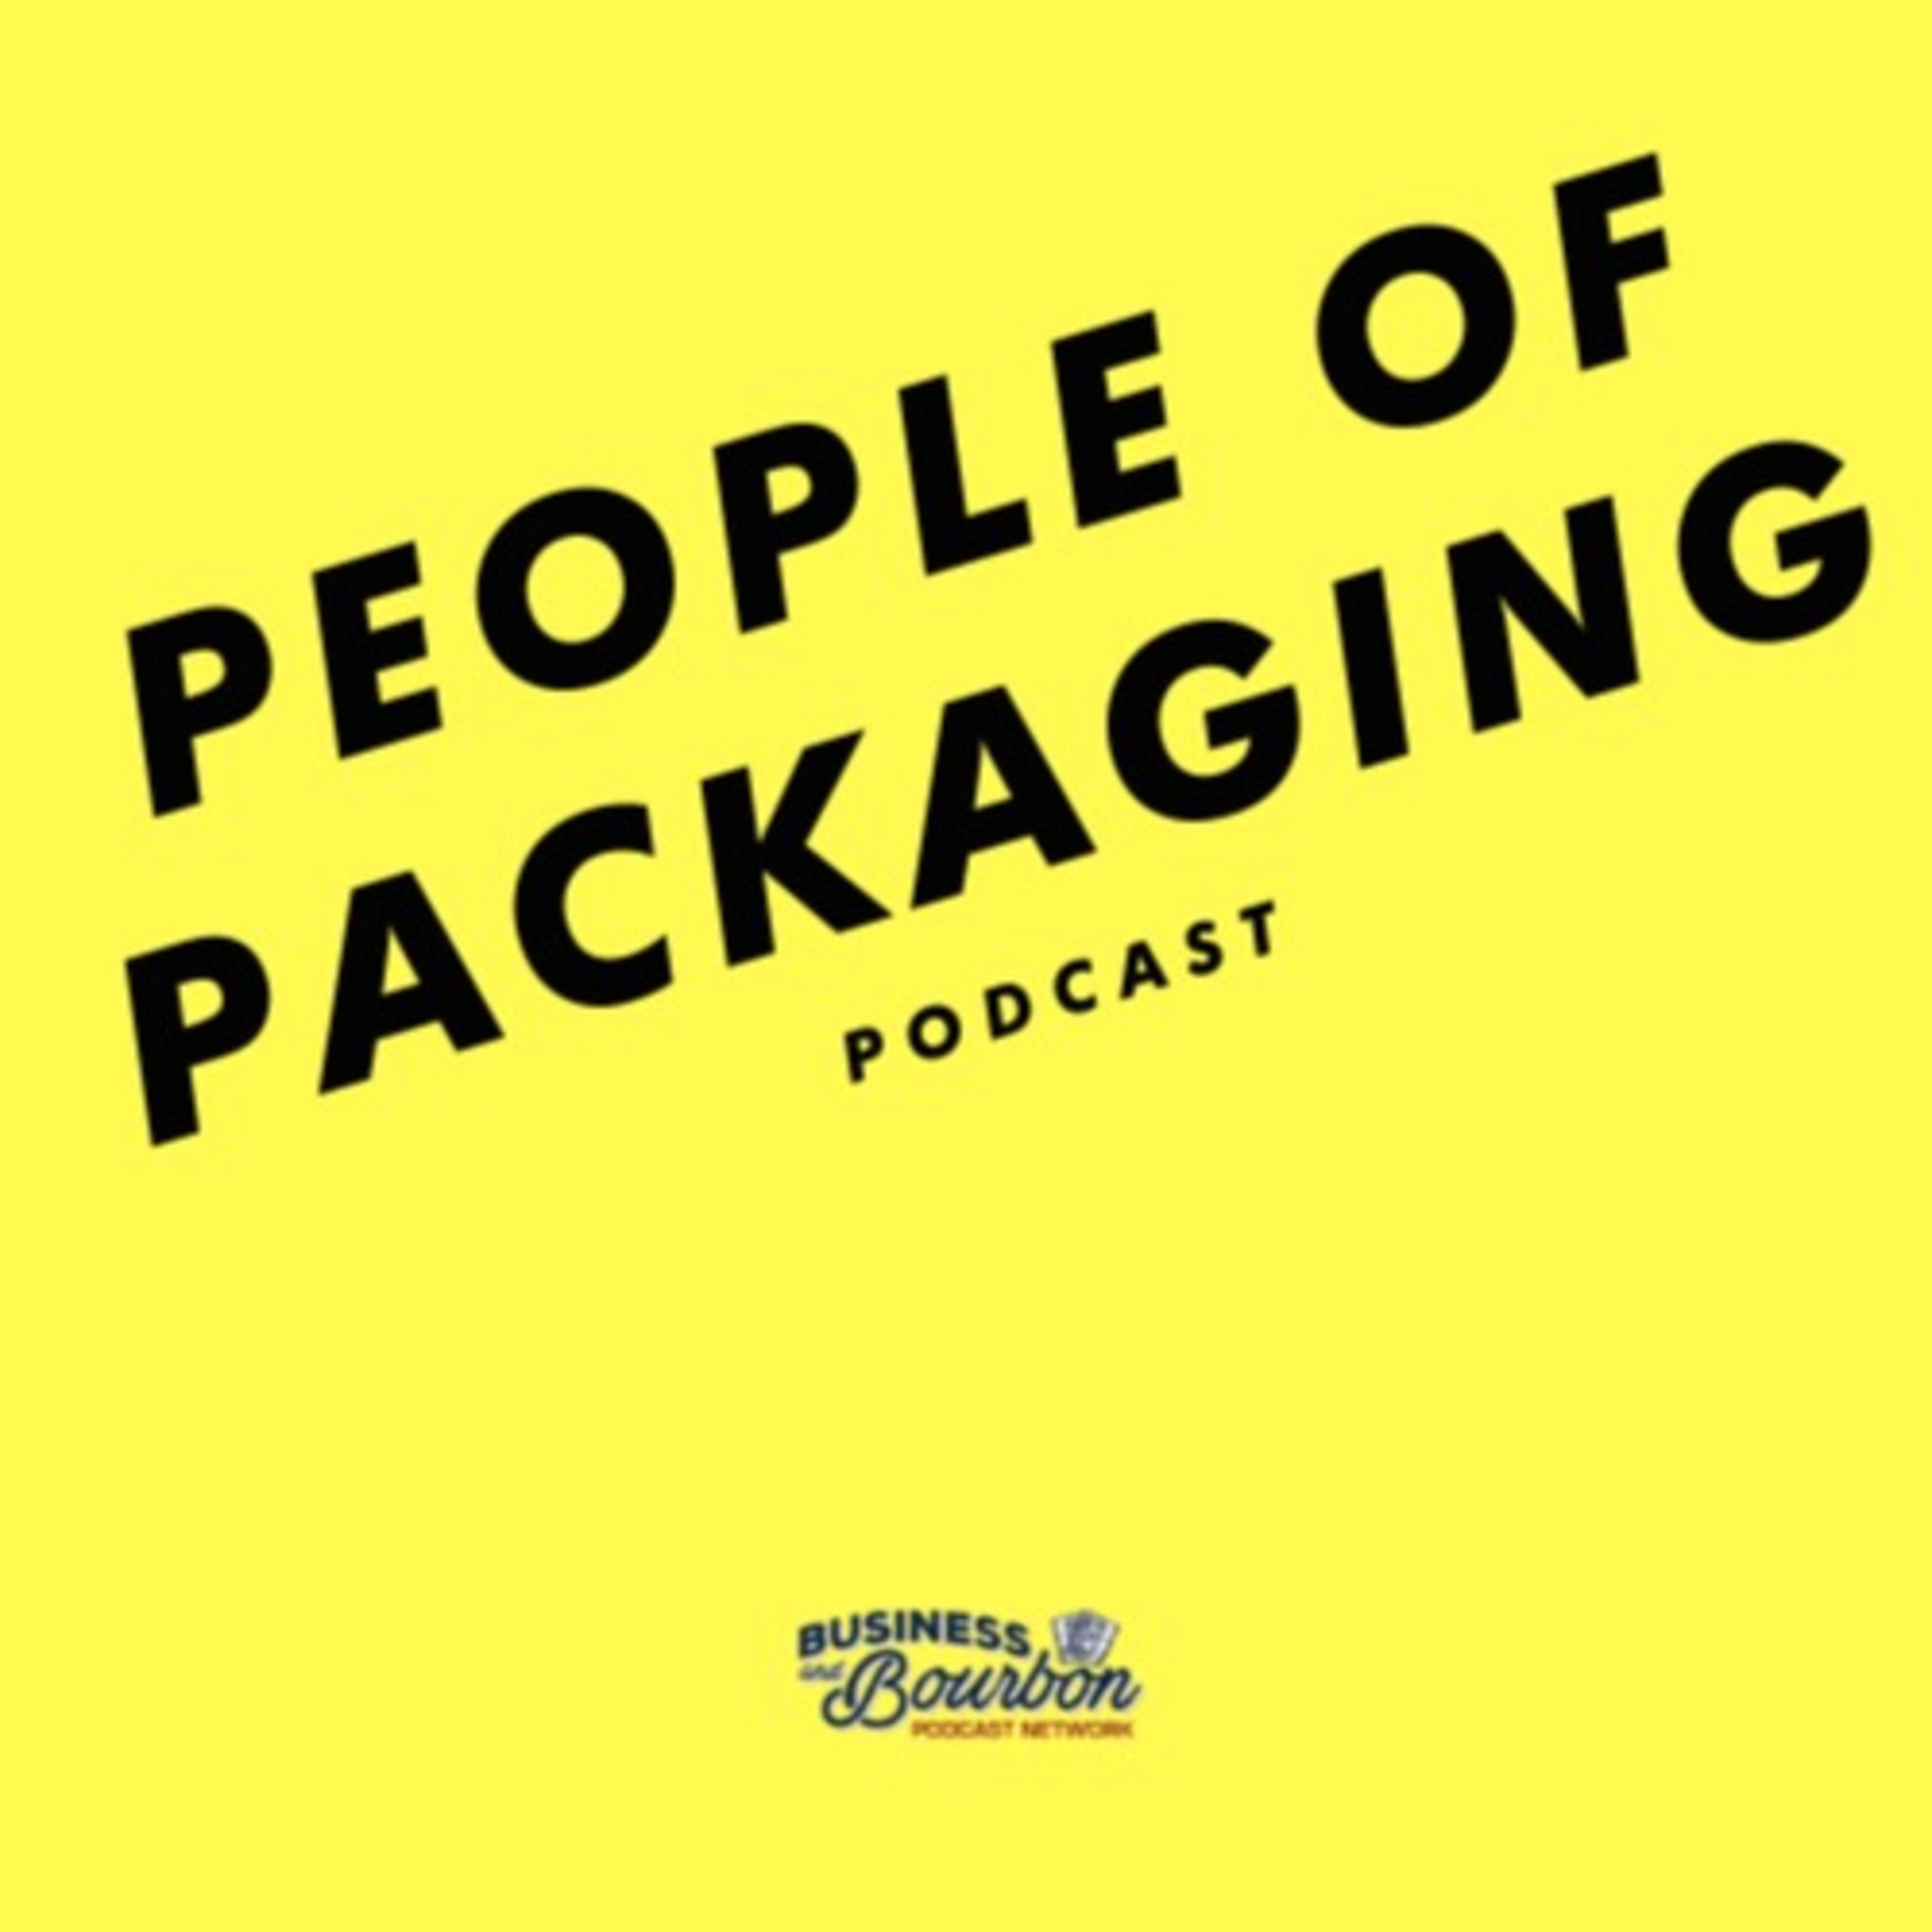 People of Packaging Podcast by Adam Peek and Ted Taitt